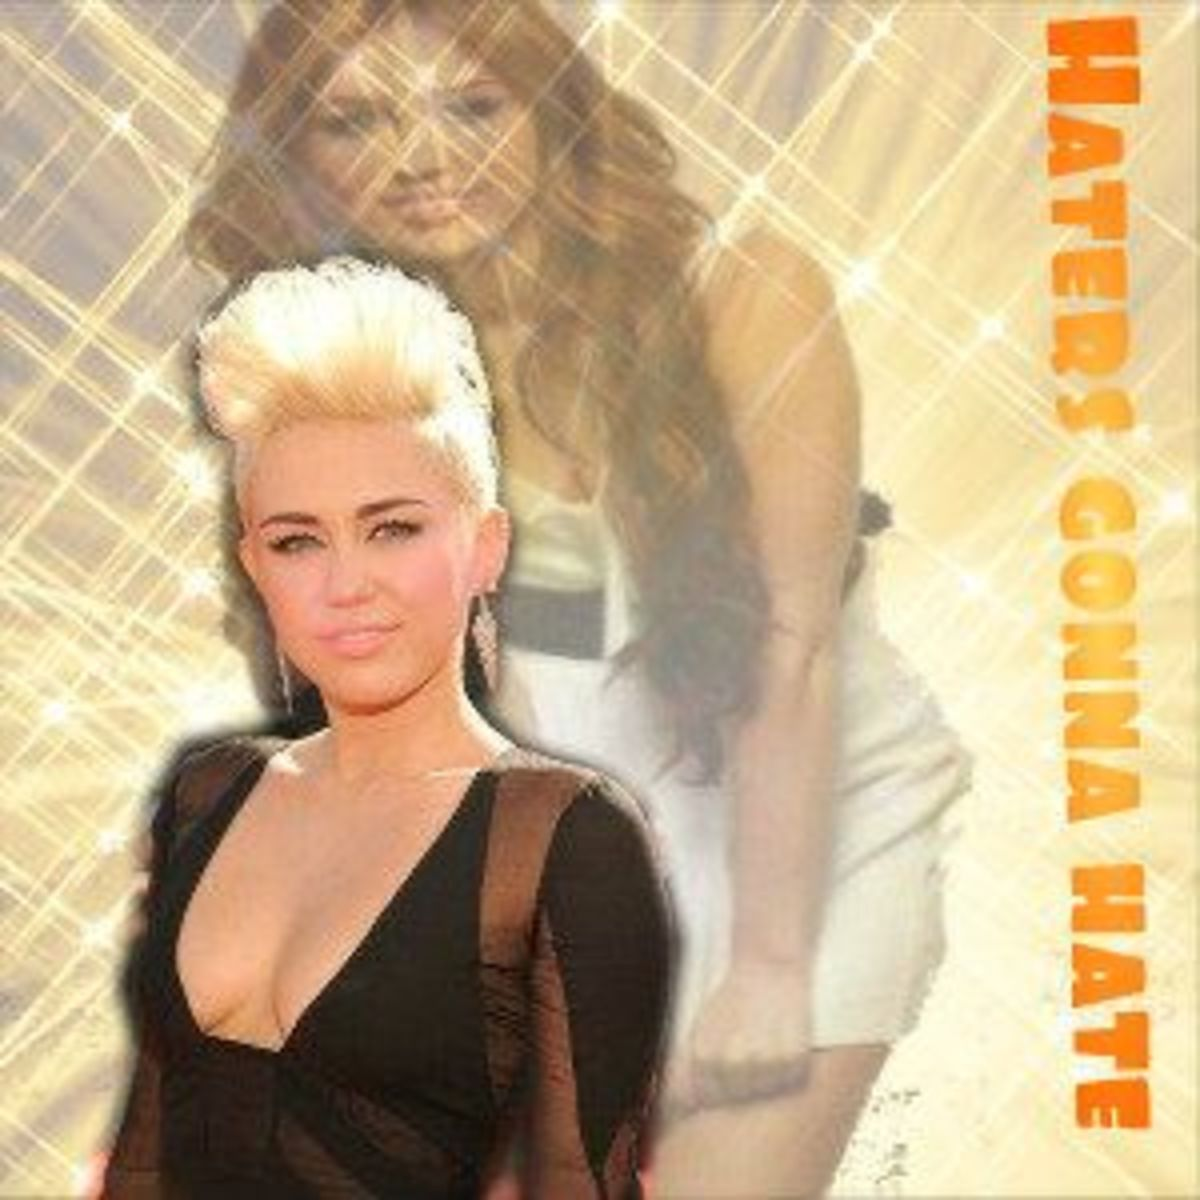 Miley Cyrus was one of the most generous celebrity contributors to charity in 2012.